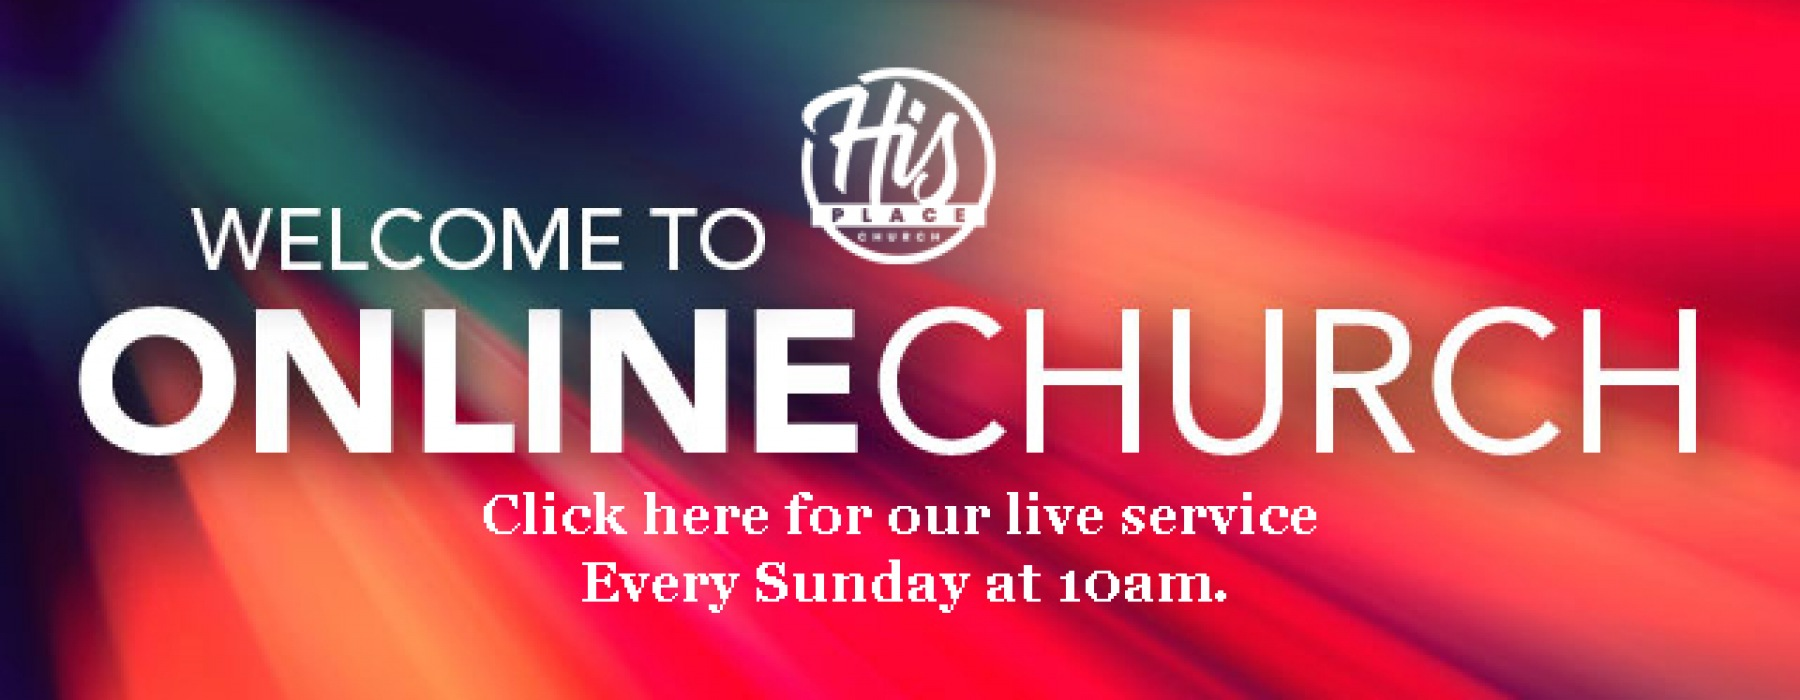 Watch Live Every Sunday at 10am